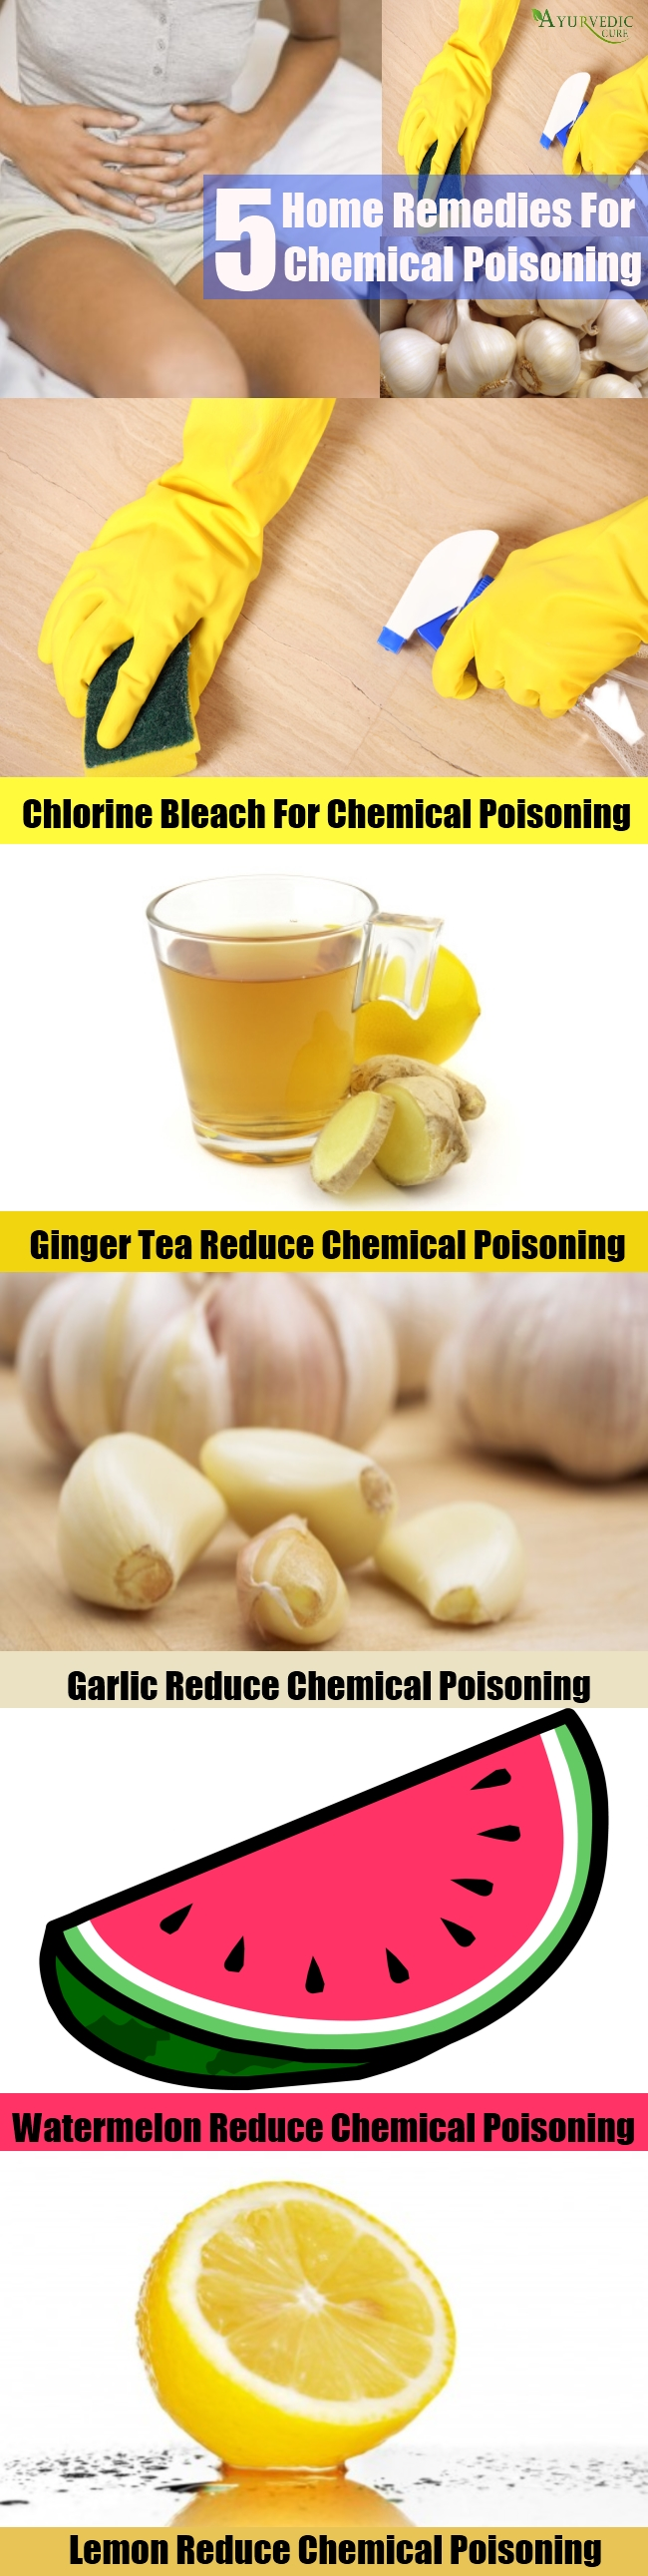 Top 5 Home Remedies For Chemical Poisoning